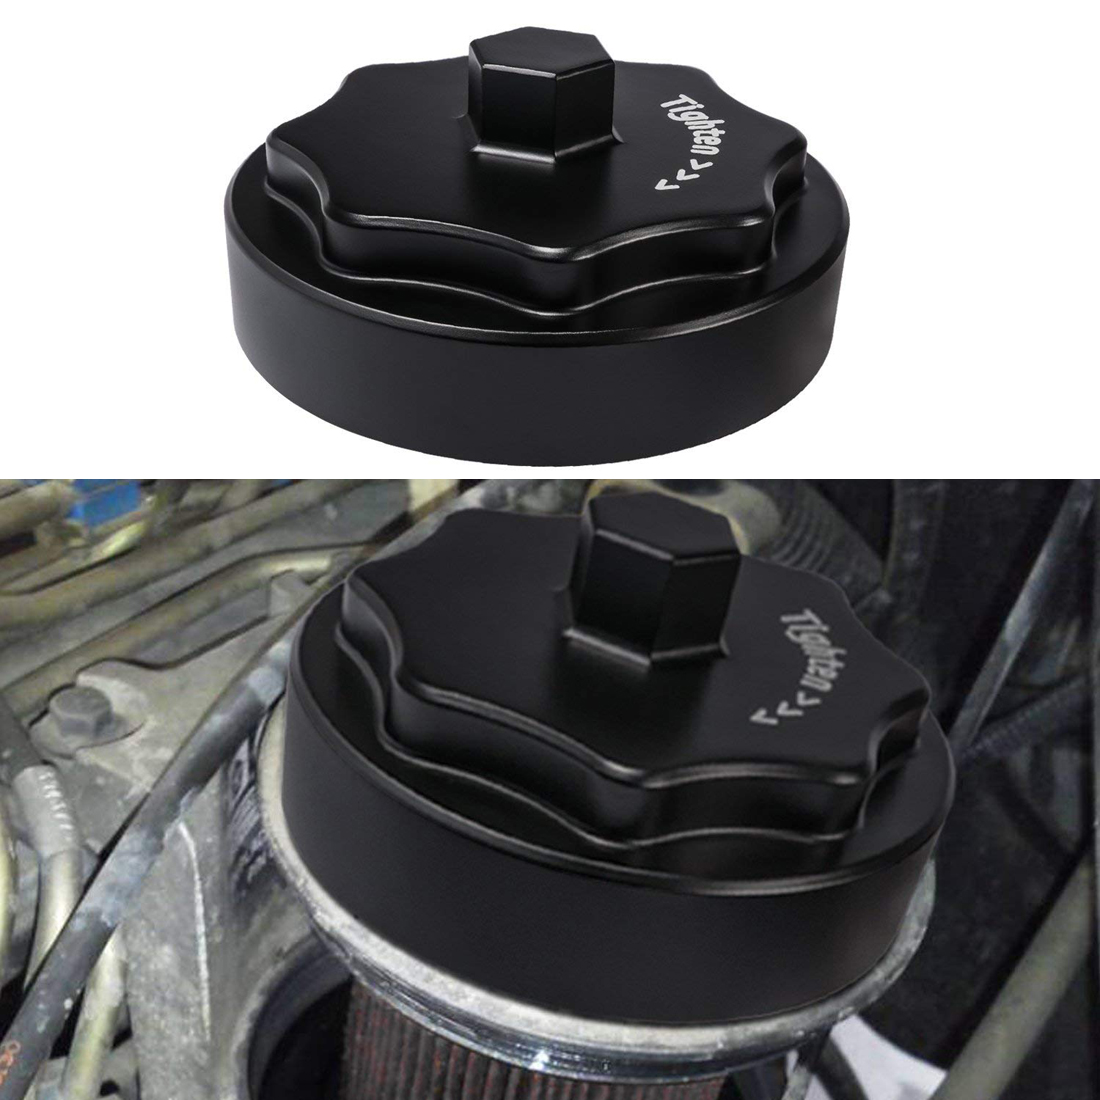 hight resolution of details about fuel filter housing cap tool for dodge ram 4500 5500 6 7l cummins diesel engine